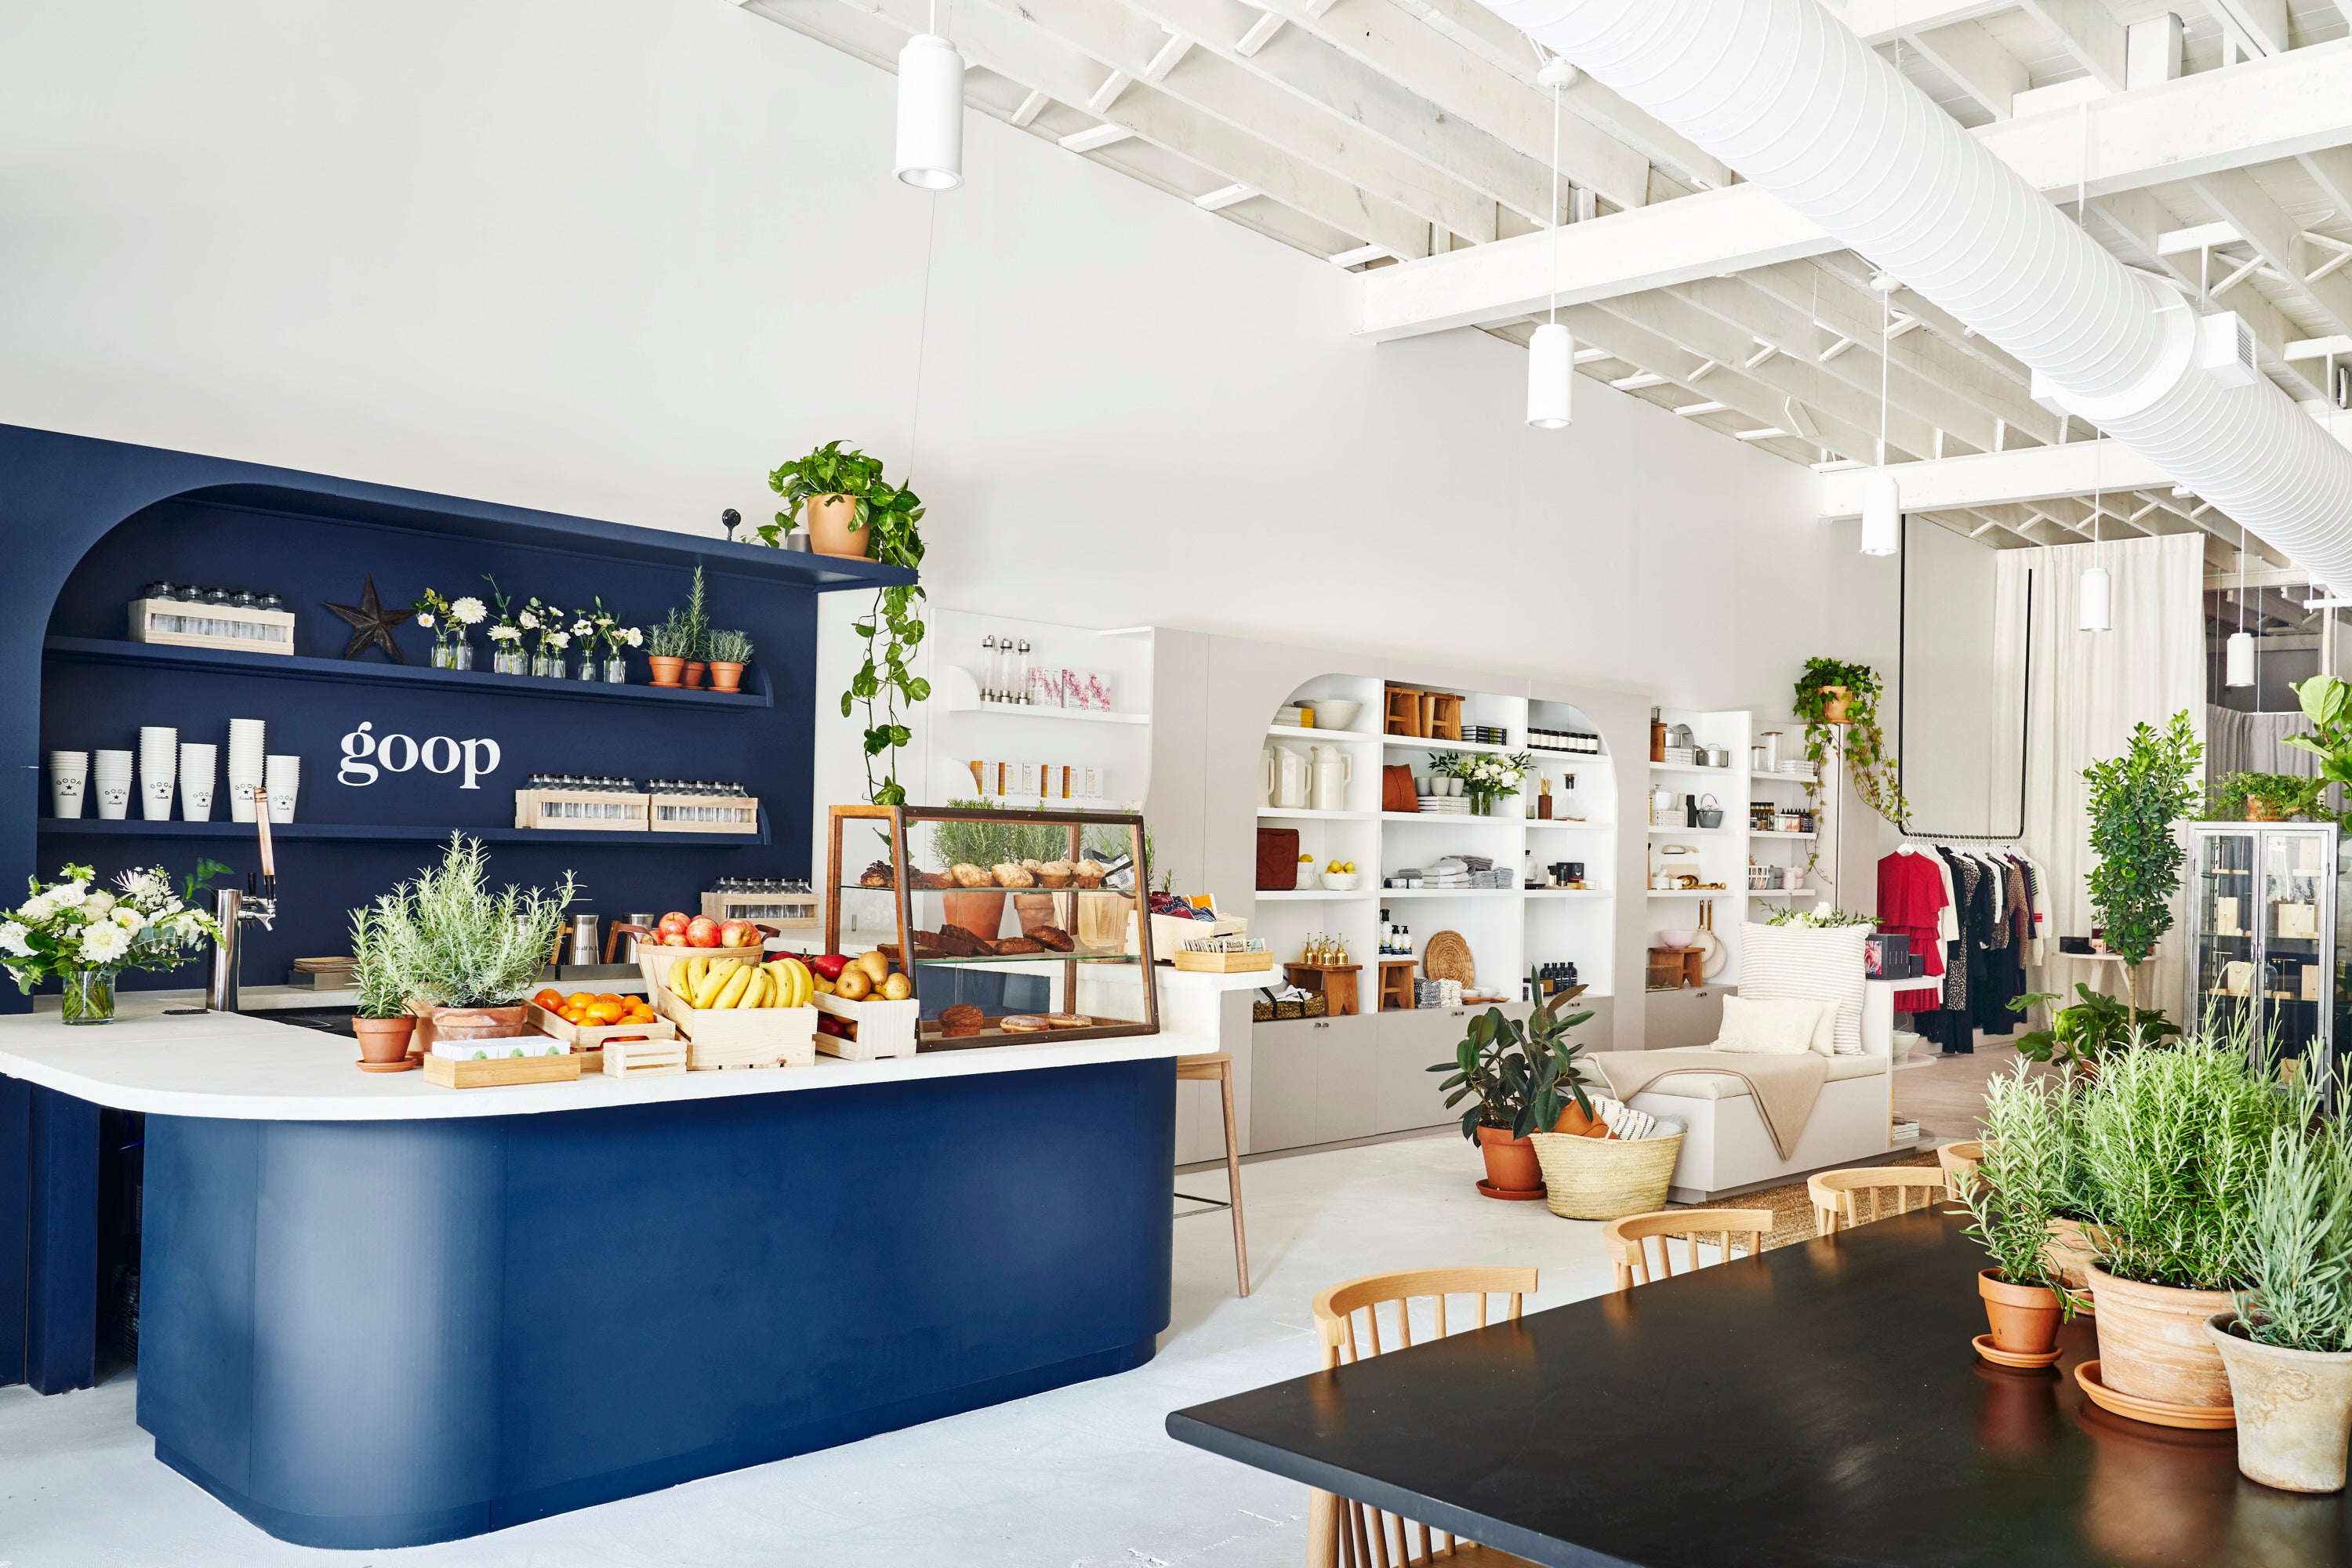 Goop's New Nashville Pop-Up Store Is Packed with Cool Wellness Goodies